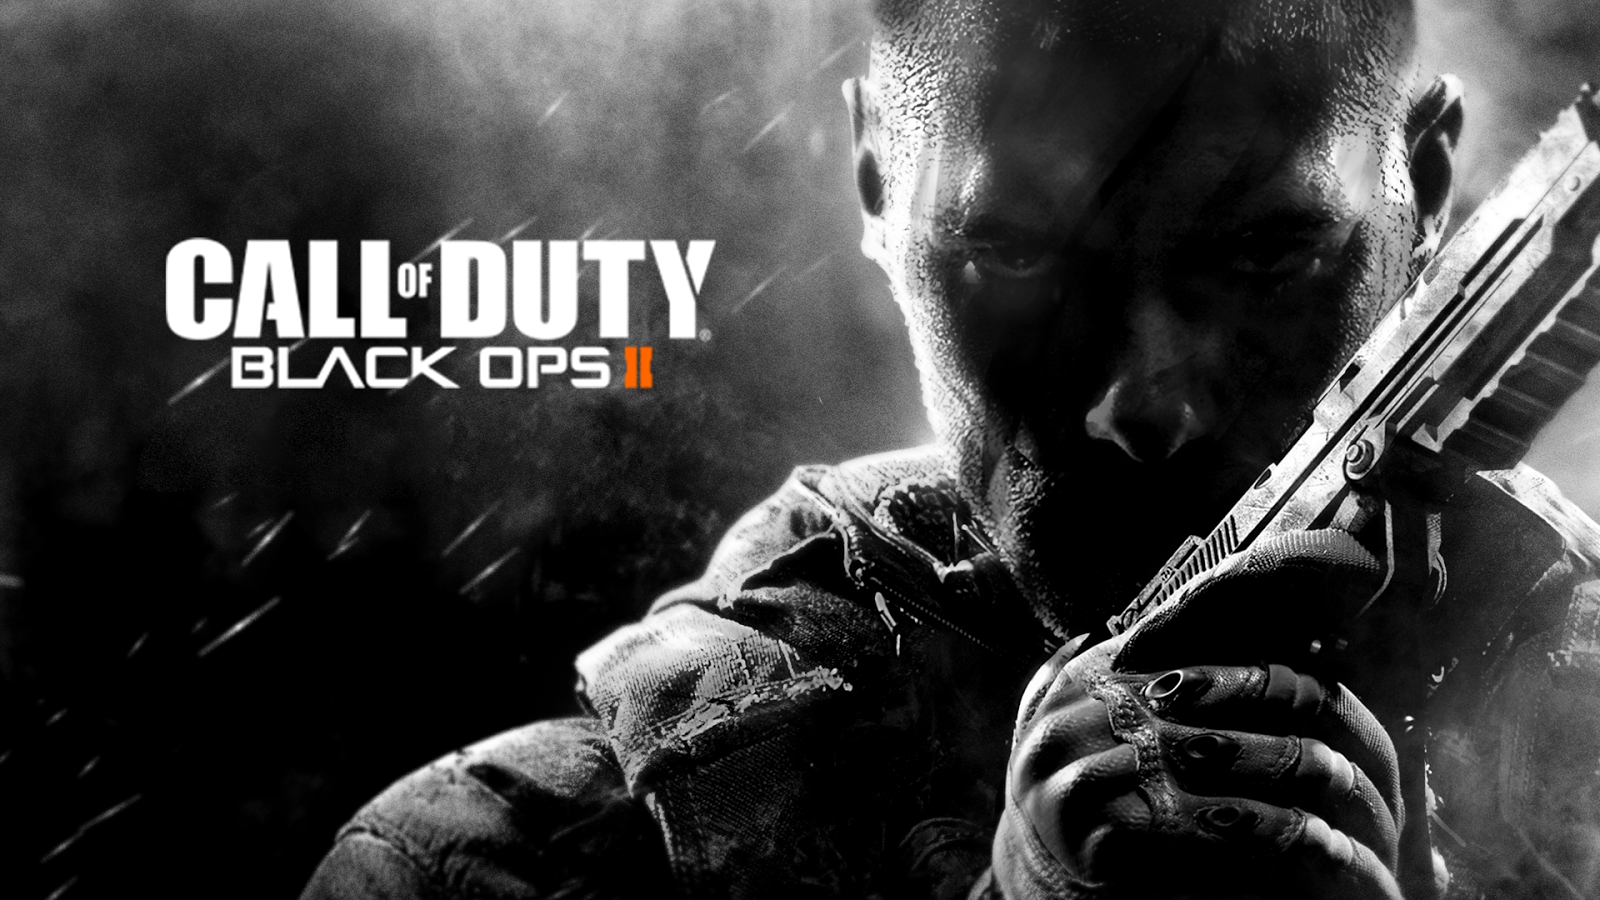 Call Of Duty Bo2 Wallpaper: Call Of Duty Black Ops 2 HD Wallpapers